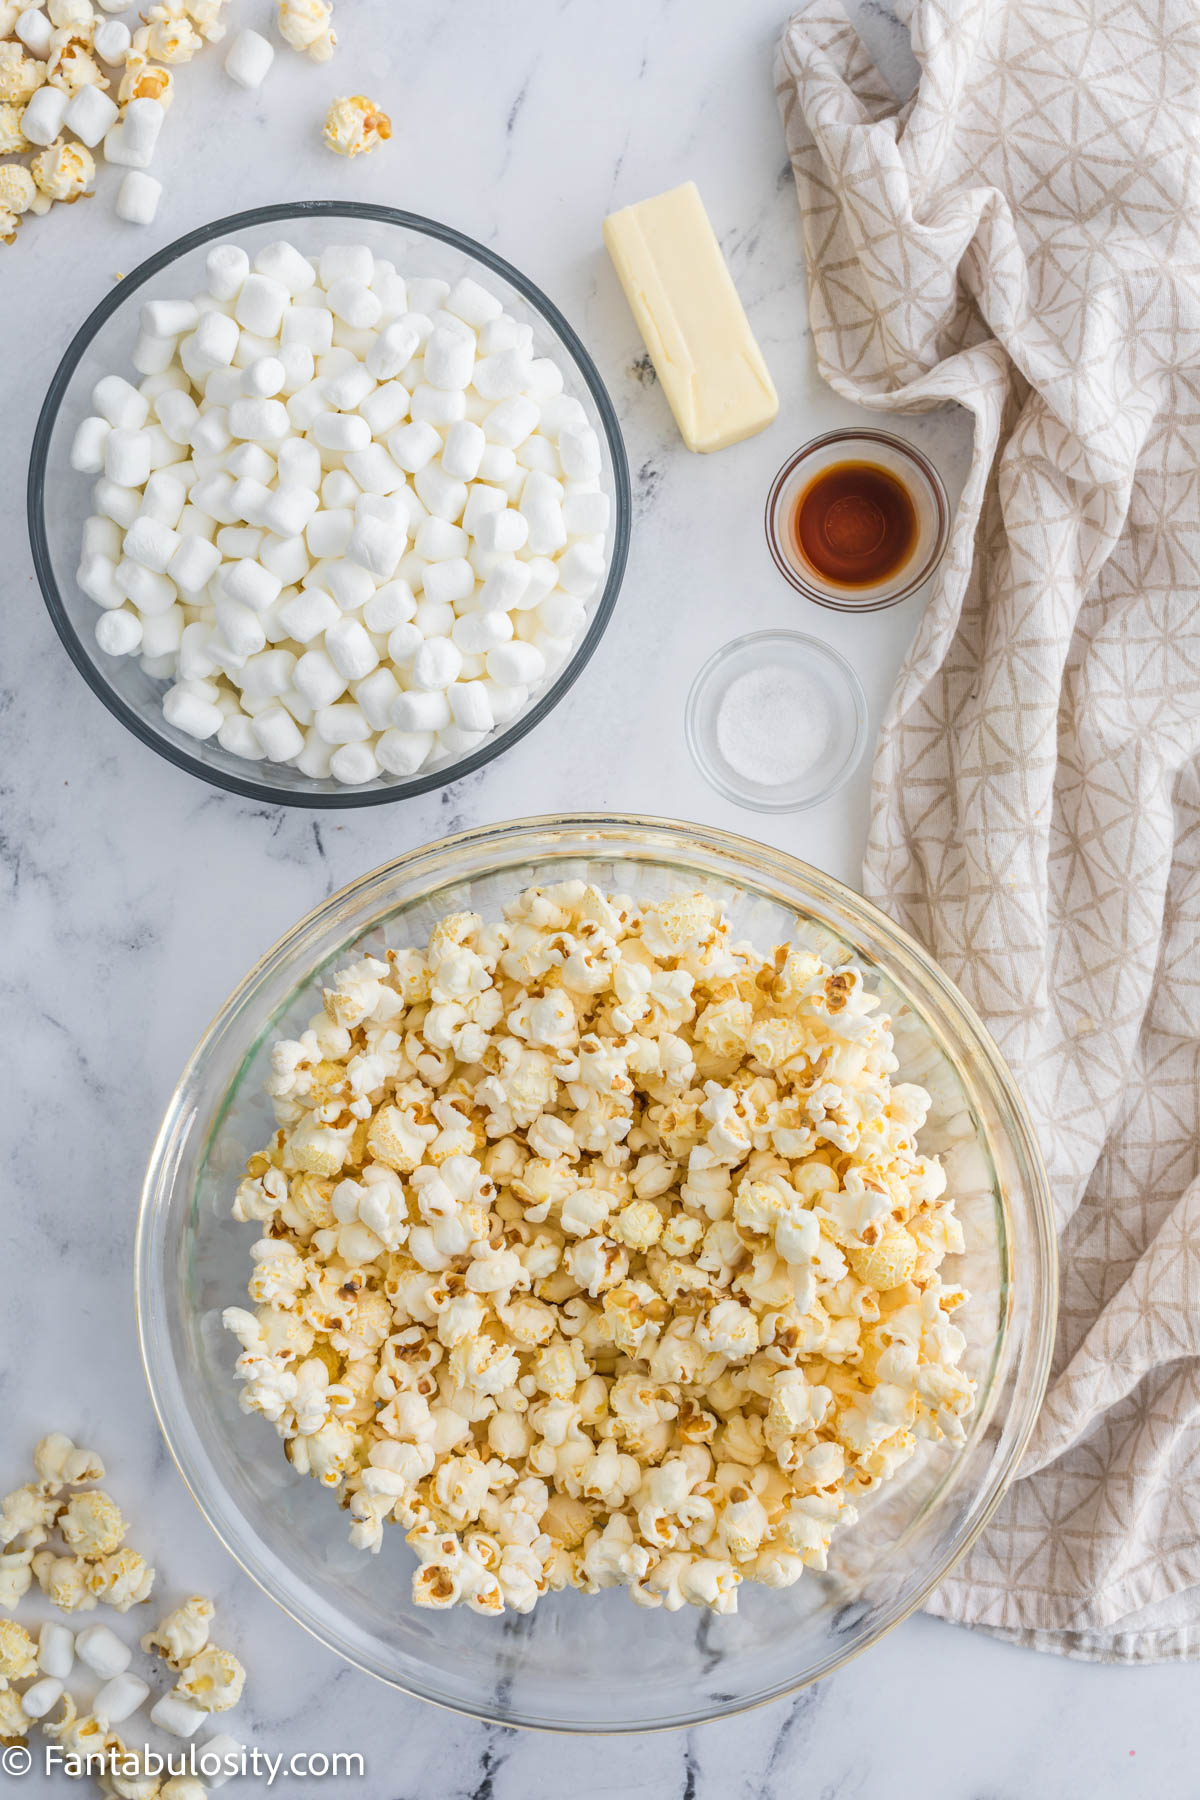 ingredients on the table for popcorn balls